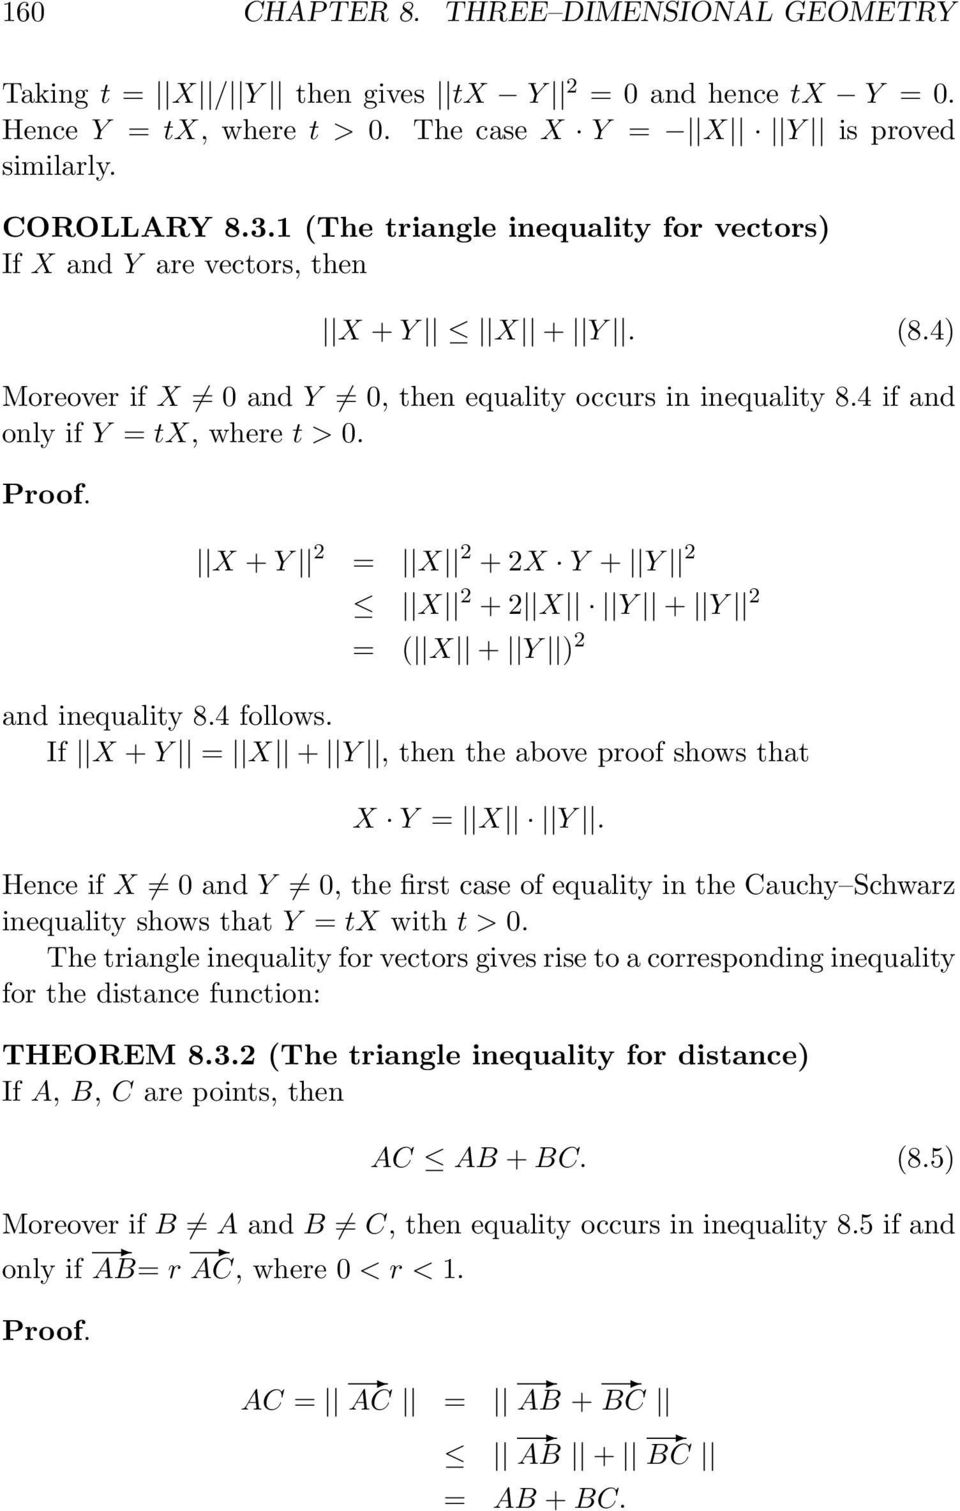 X + Y 2 = X 2 + 2X Y + Y 2 X 2 + 2 X Y + Y 2 = ( X + Y ) 2 and inequality 8.4 follows. If X + Y = X + Y, then the above proof shows that X Y = X Y.